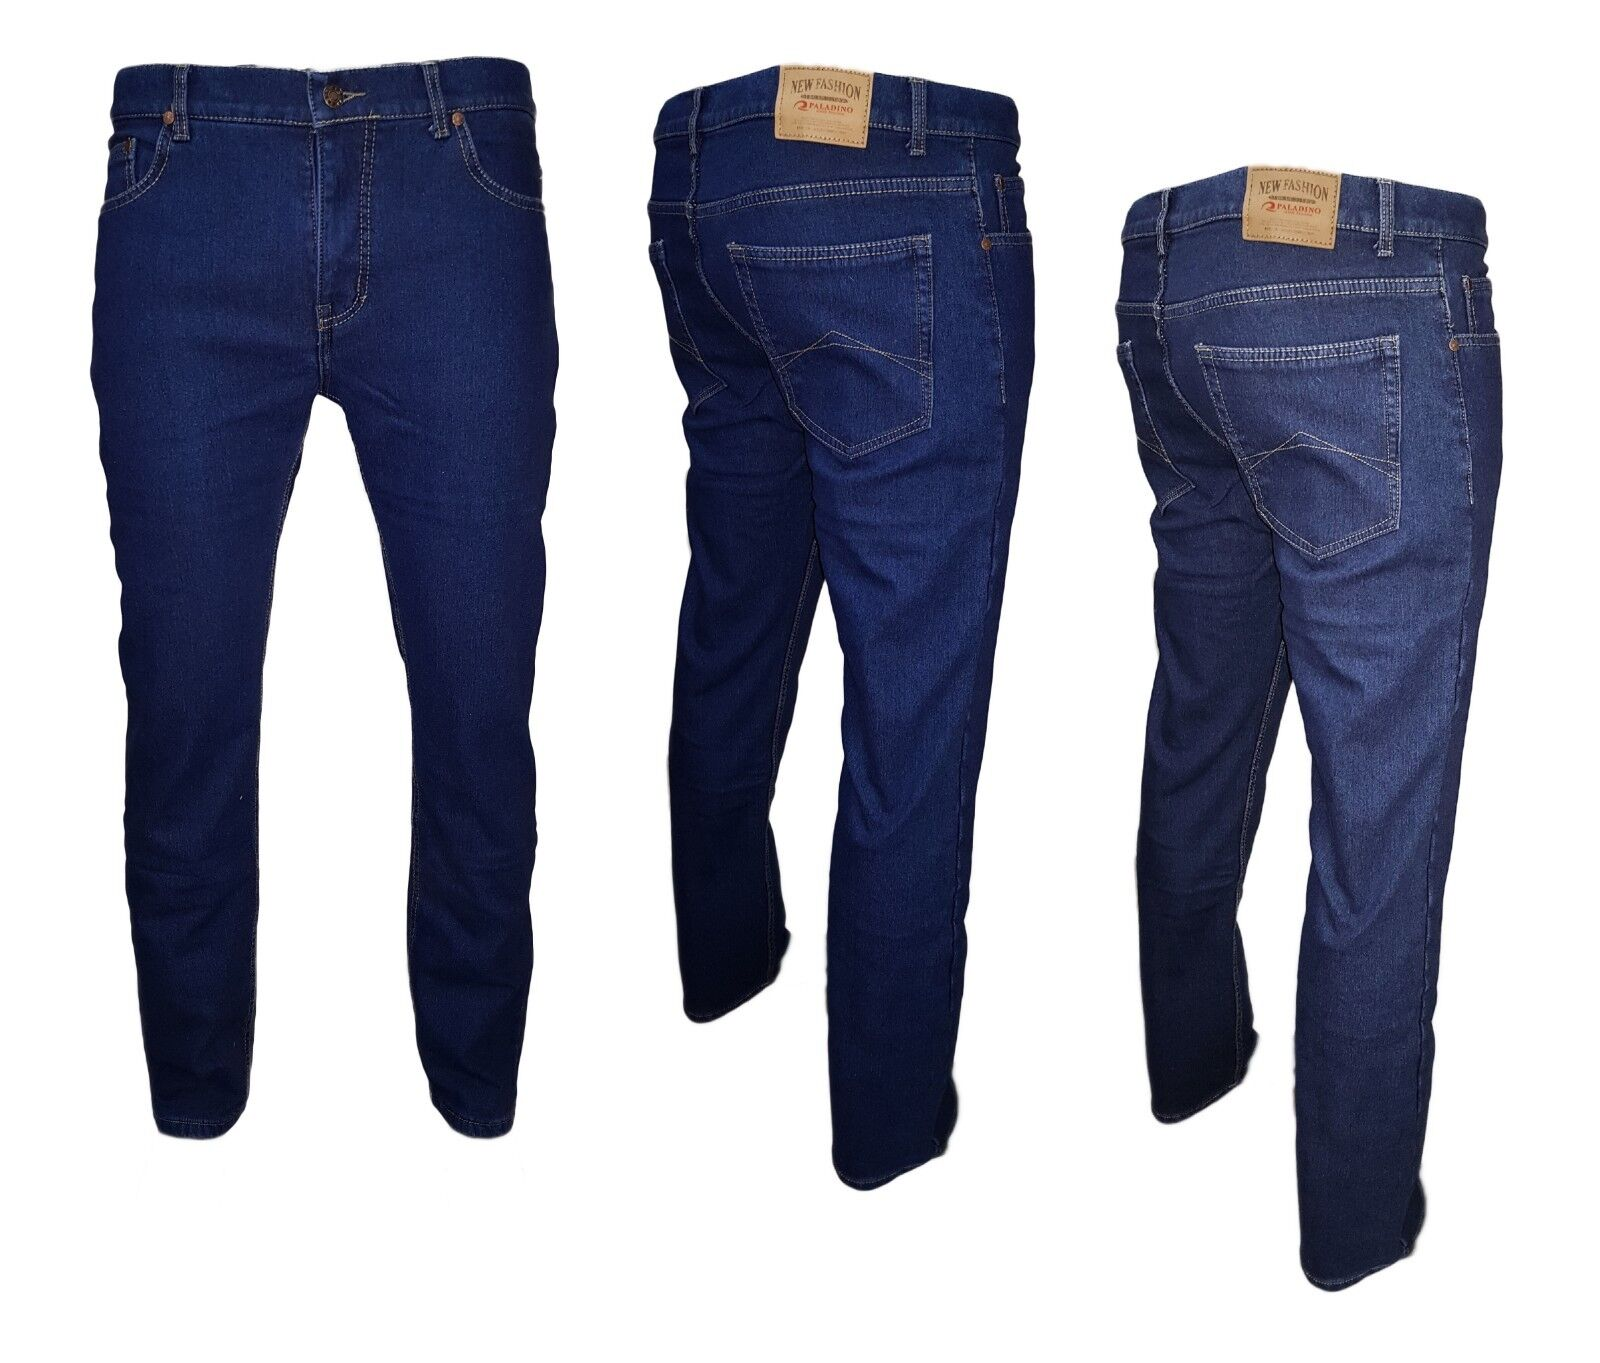 Jeans Uomo Regular Fit Autunno Inverno Primavera Estate tg. 46/60 3 COLORI